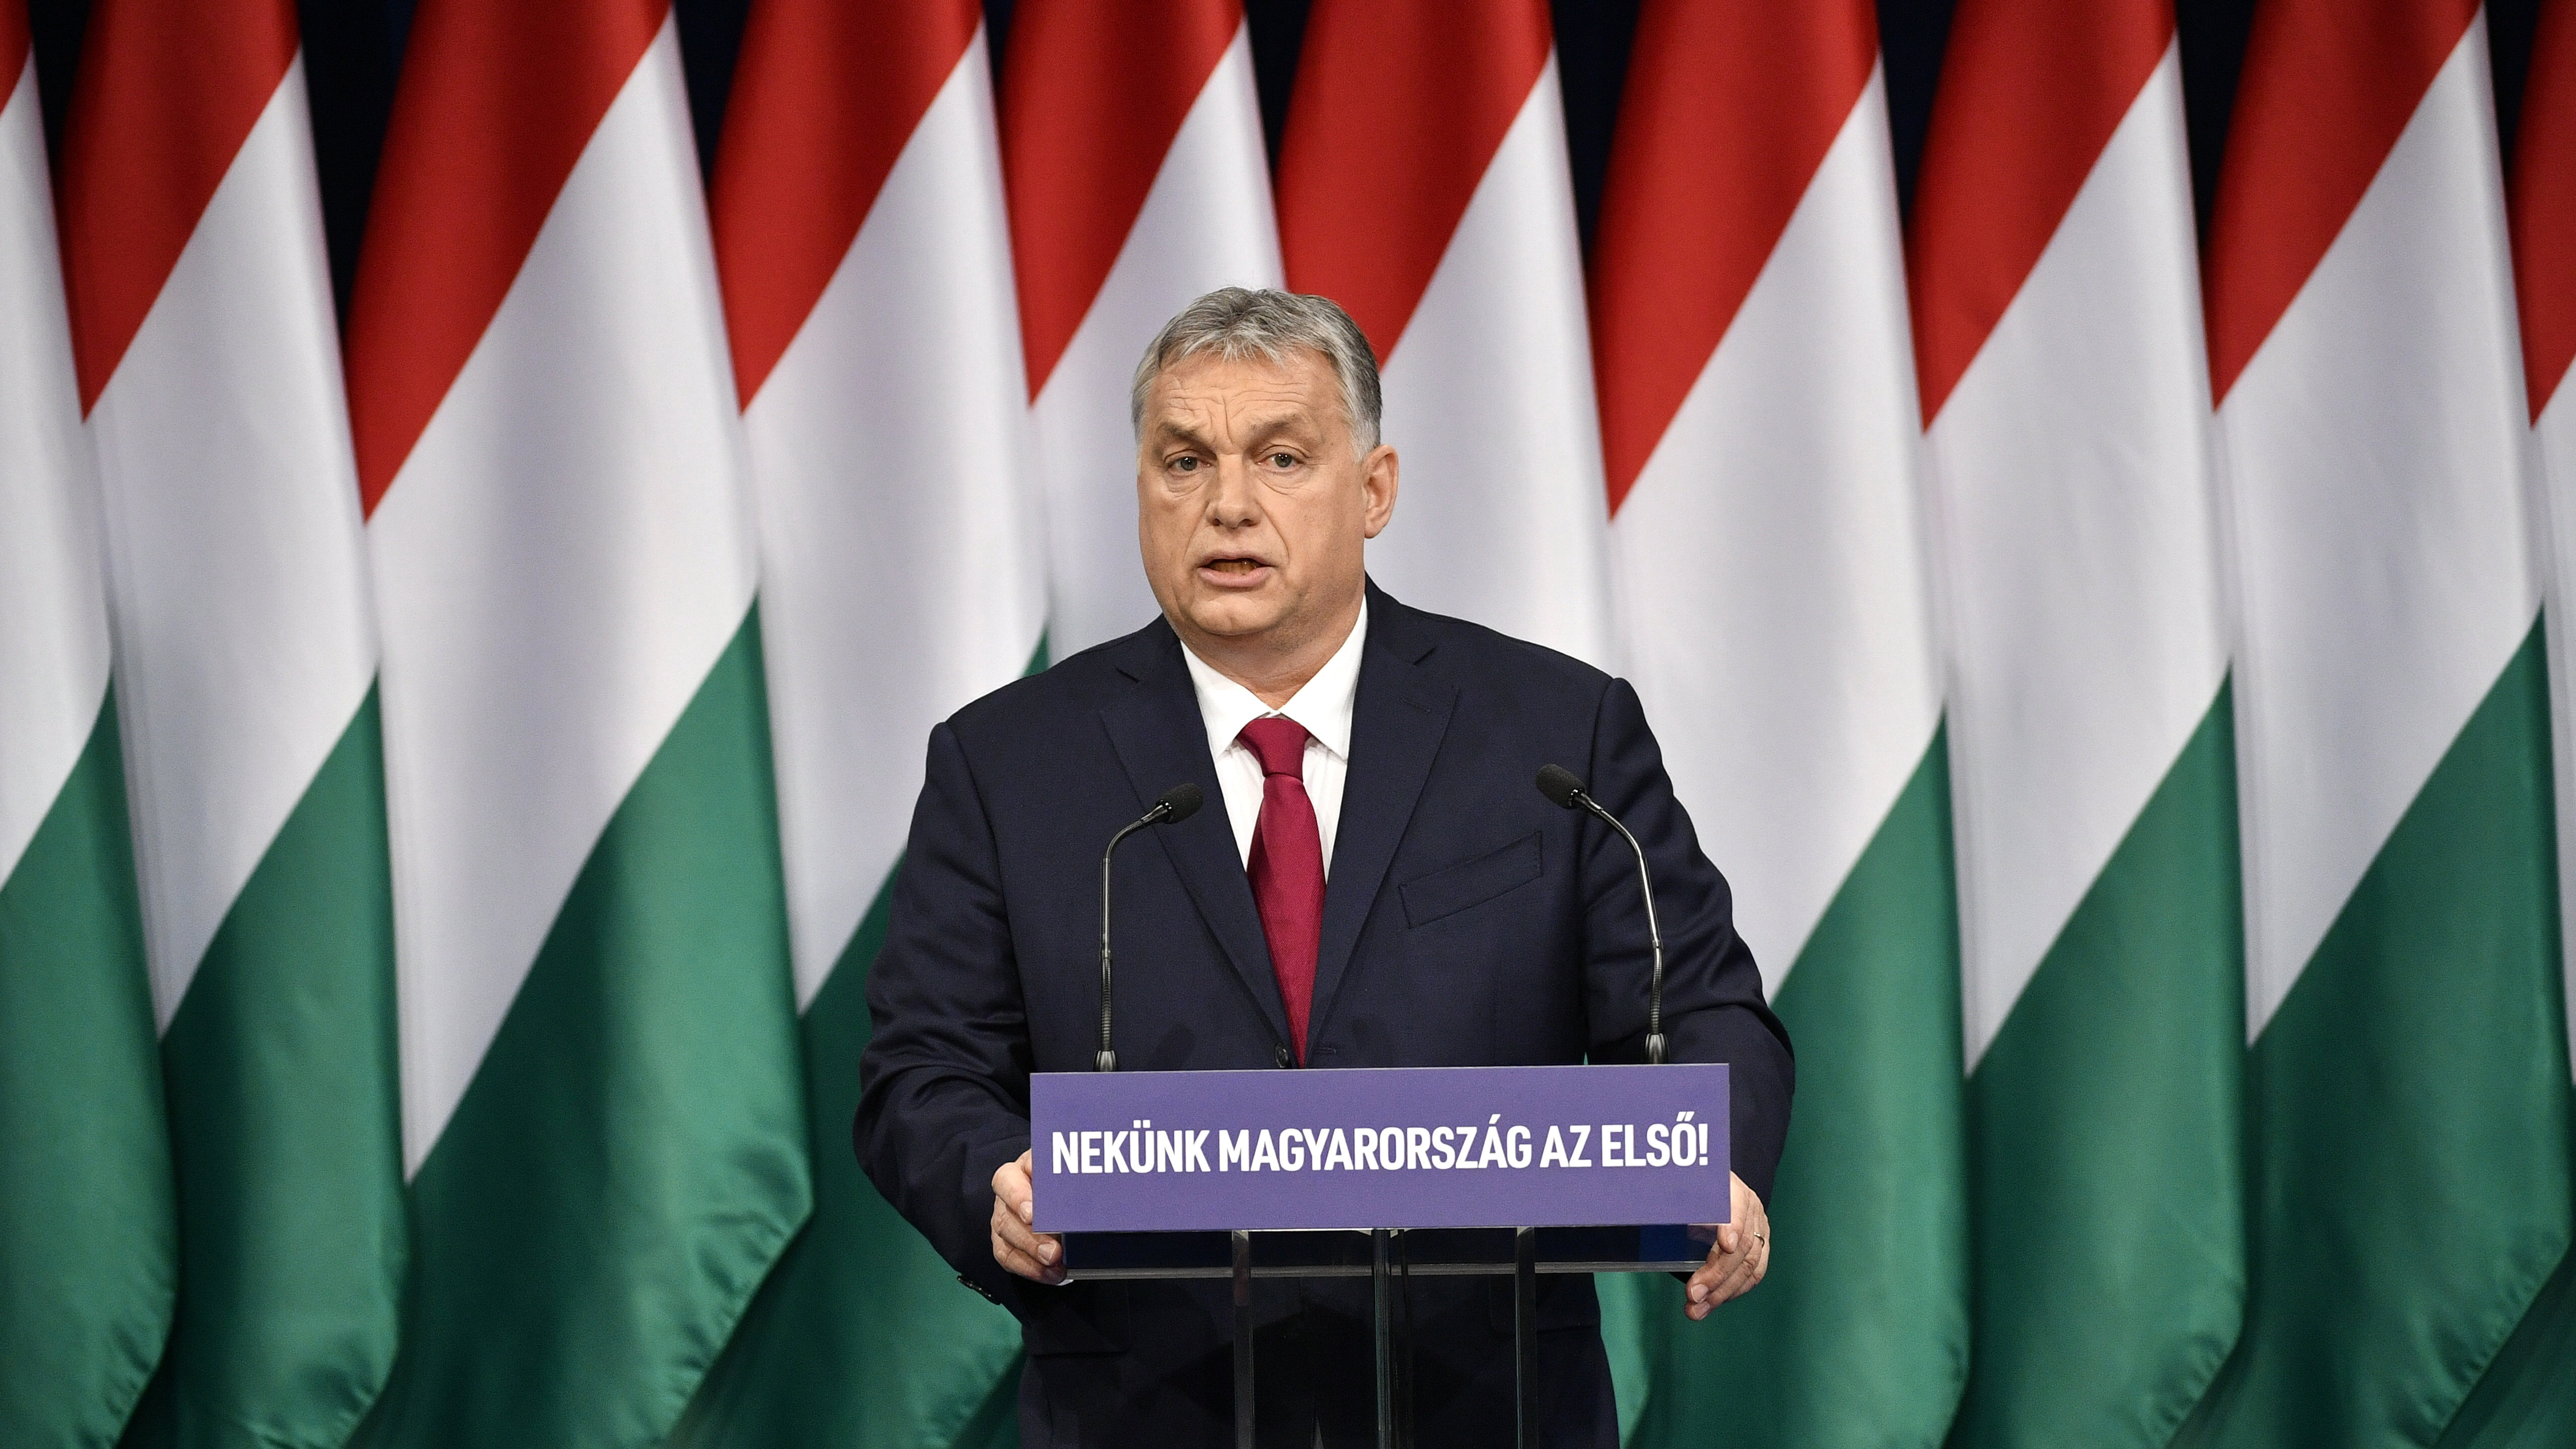 Viktor Orban: For us, Hungary comes first